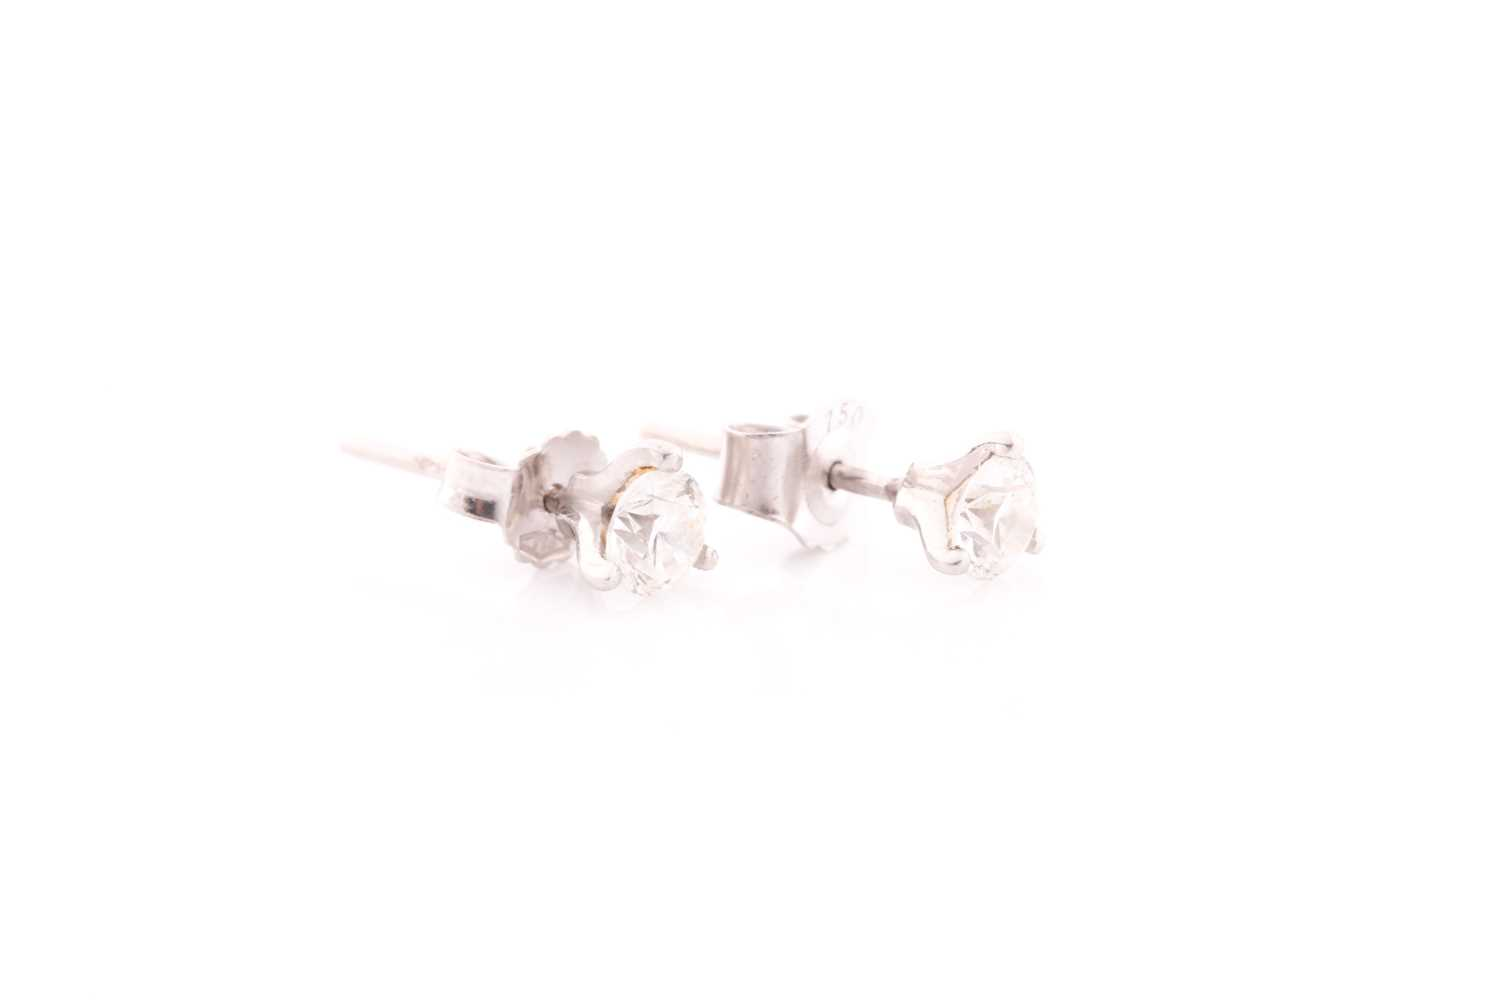 A pair of solitaire diamond stud earrings, set with round brilliant-cut diamonds of approximately - Image 2 of 3